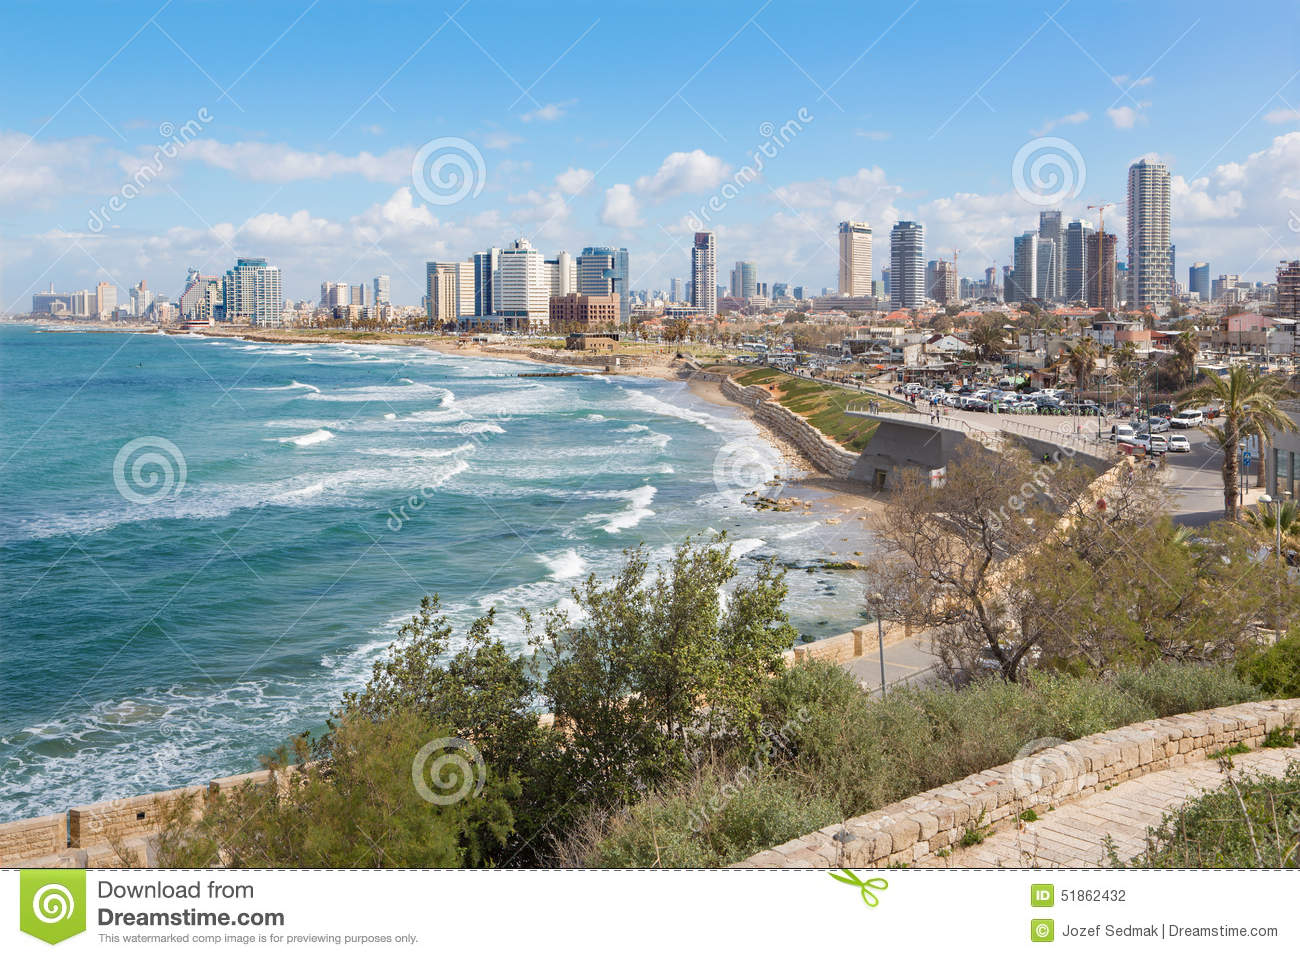 tel aviv les perspectives au bord de mer et la ville de vieux jaffa photographie ditorial. Black Bedroom Furniture Sets. Home Design Ideas